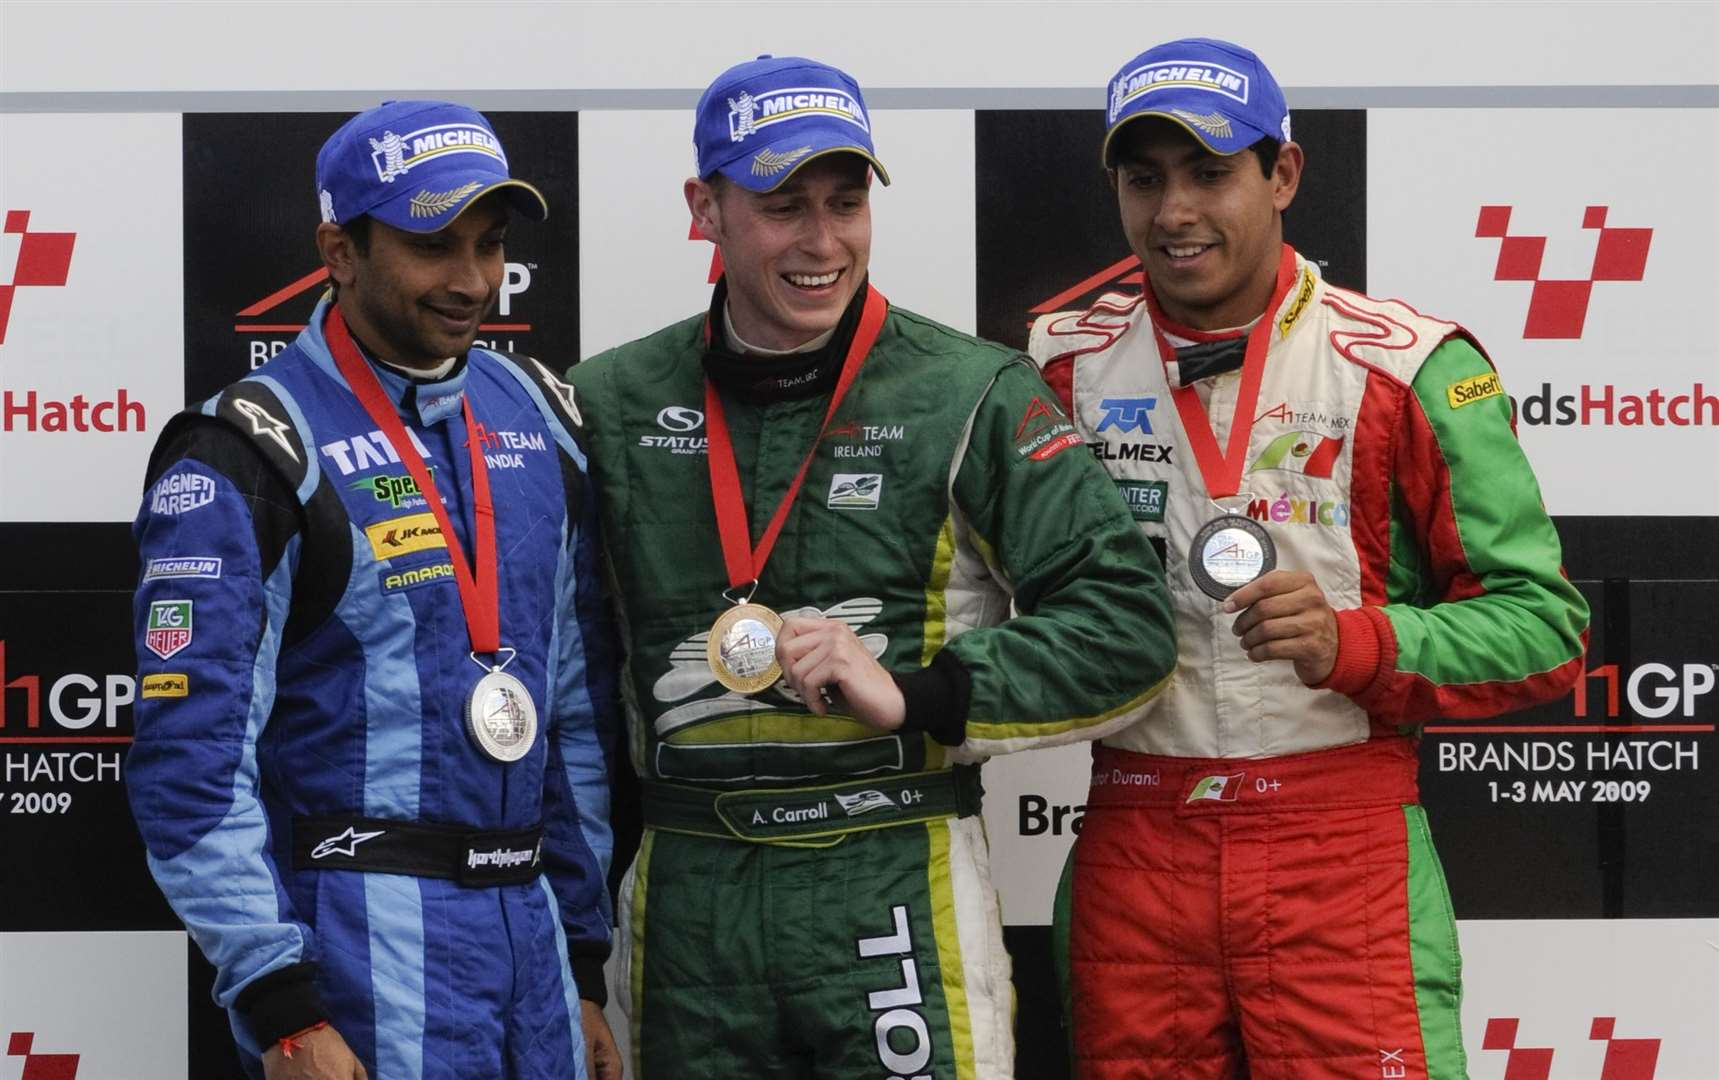 The sprint race podium in May 2009 - Narain Karthikeyan, winner Adam Carroll and Salvador Duran. Picture: Andy Payton